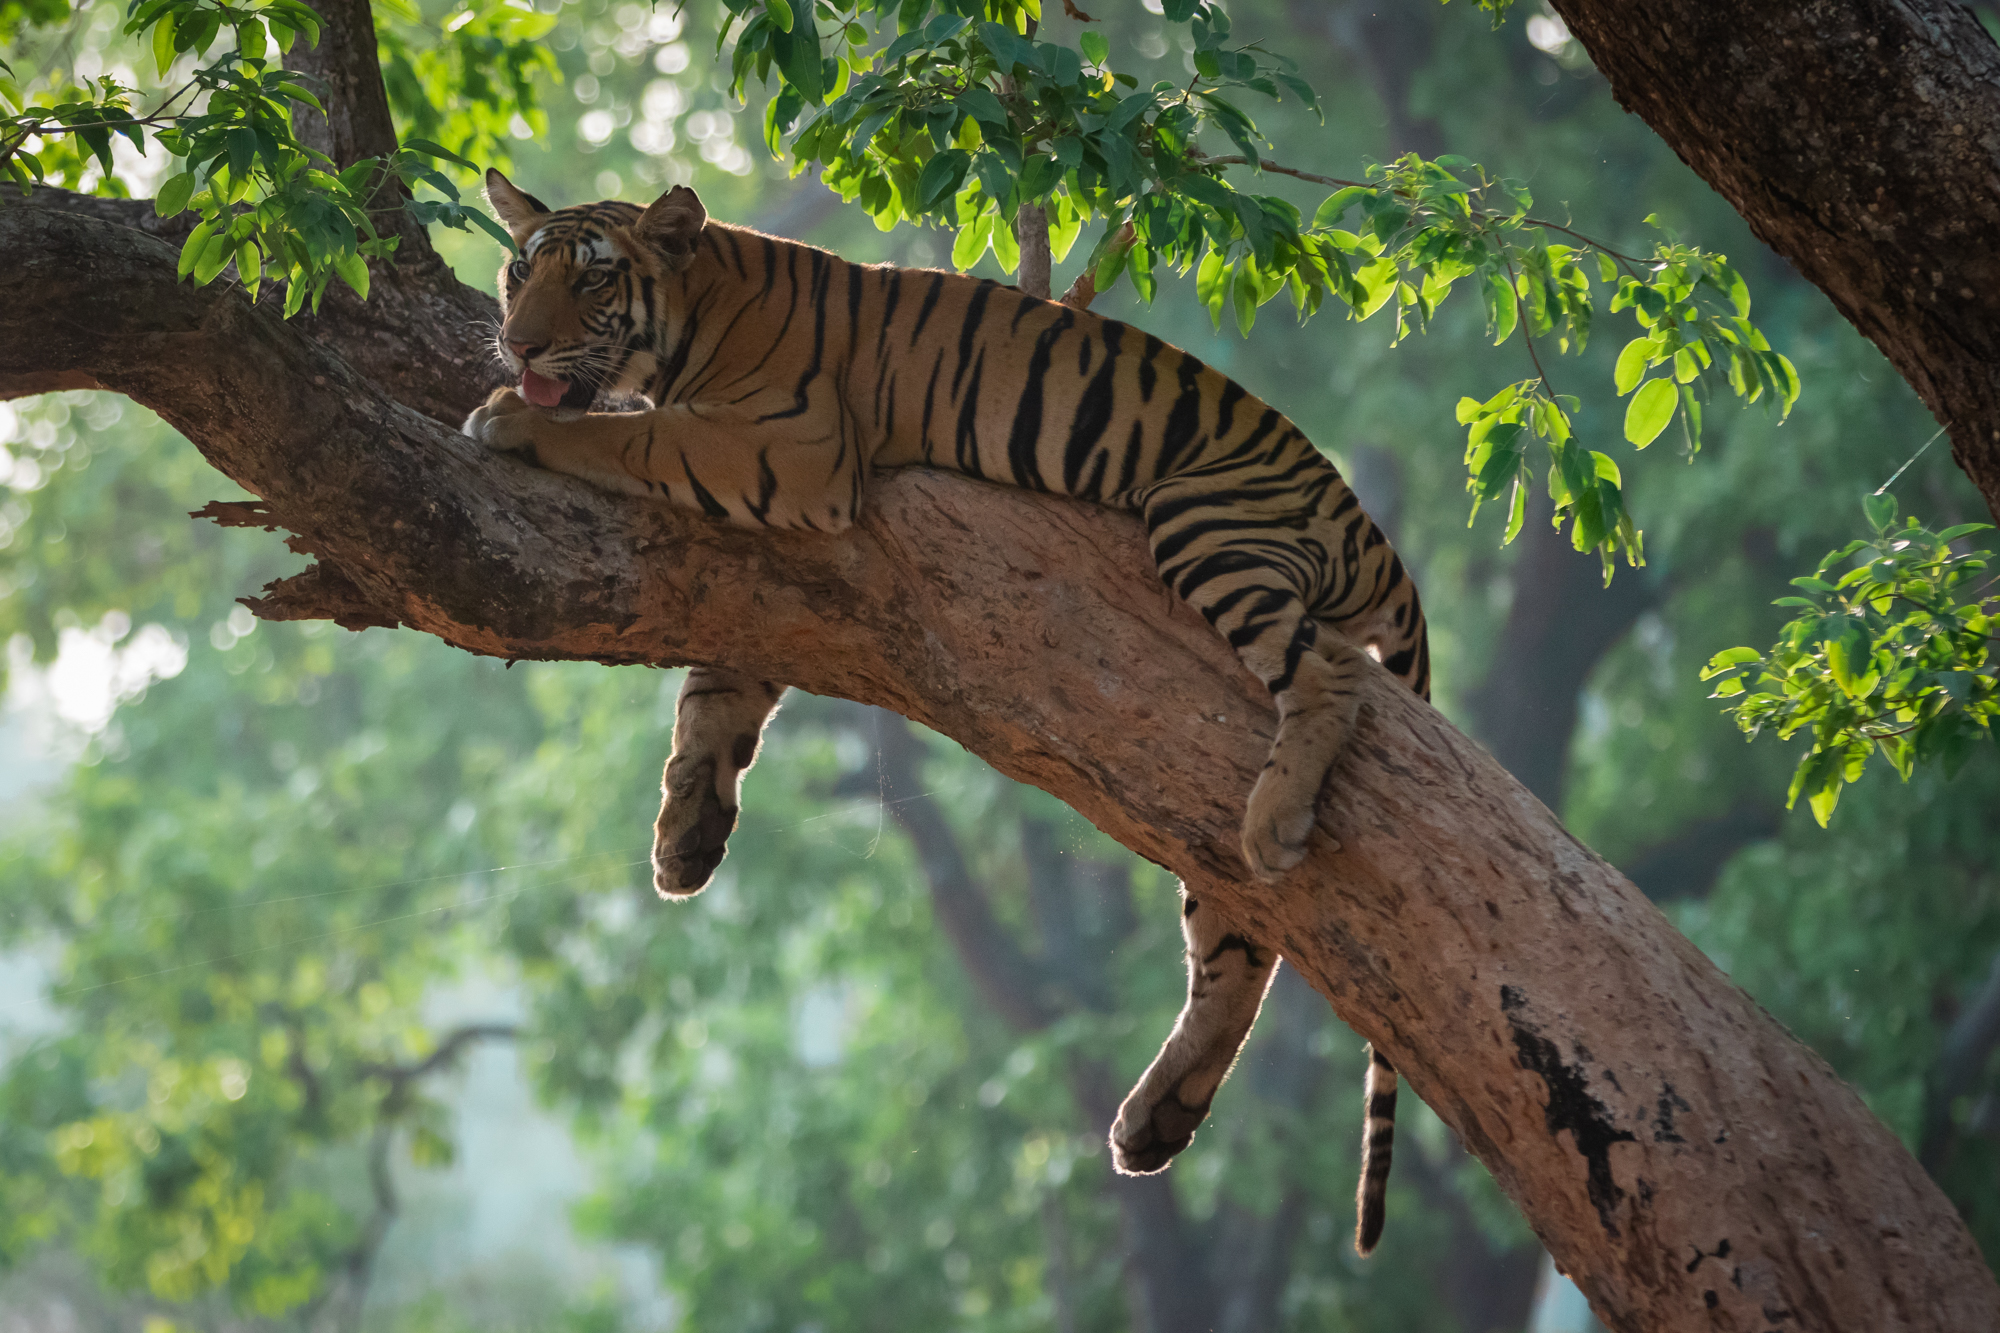 A fully grown male tiger can tip the scales at 250 kgs. This bulk makes it difficult for them to climb trees like leopards. But this young male  had no such issues. Location: Bandhavgarh